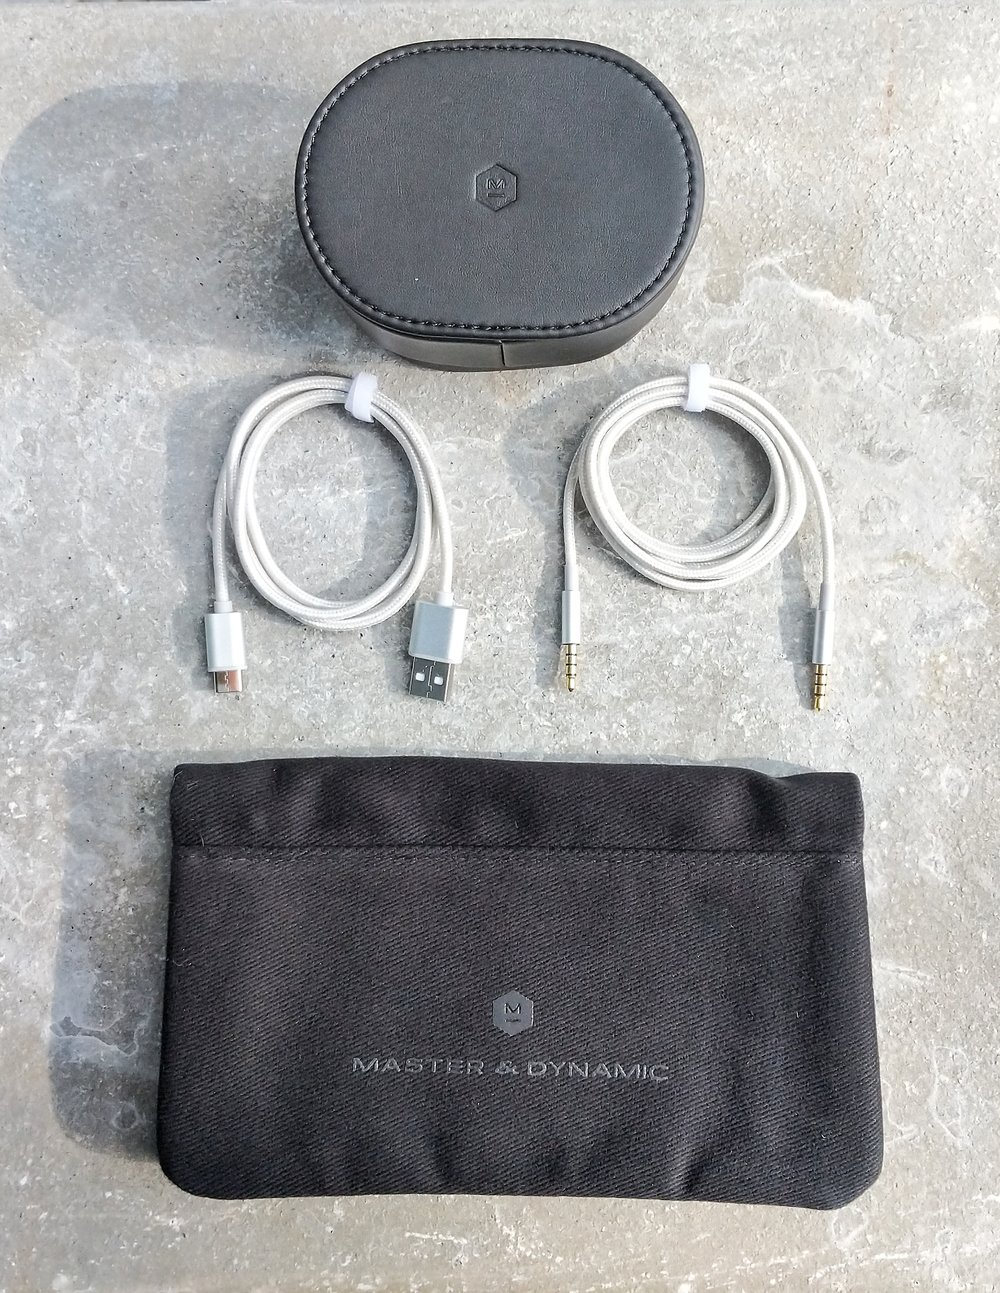 Master & Dynamic MW50 headphone accessories. USB-c charging cable and 3.5mm input cable. Softshell carry case and leather earpad case.